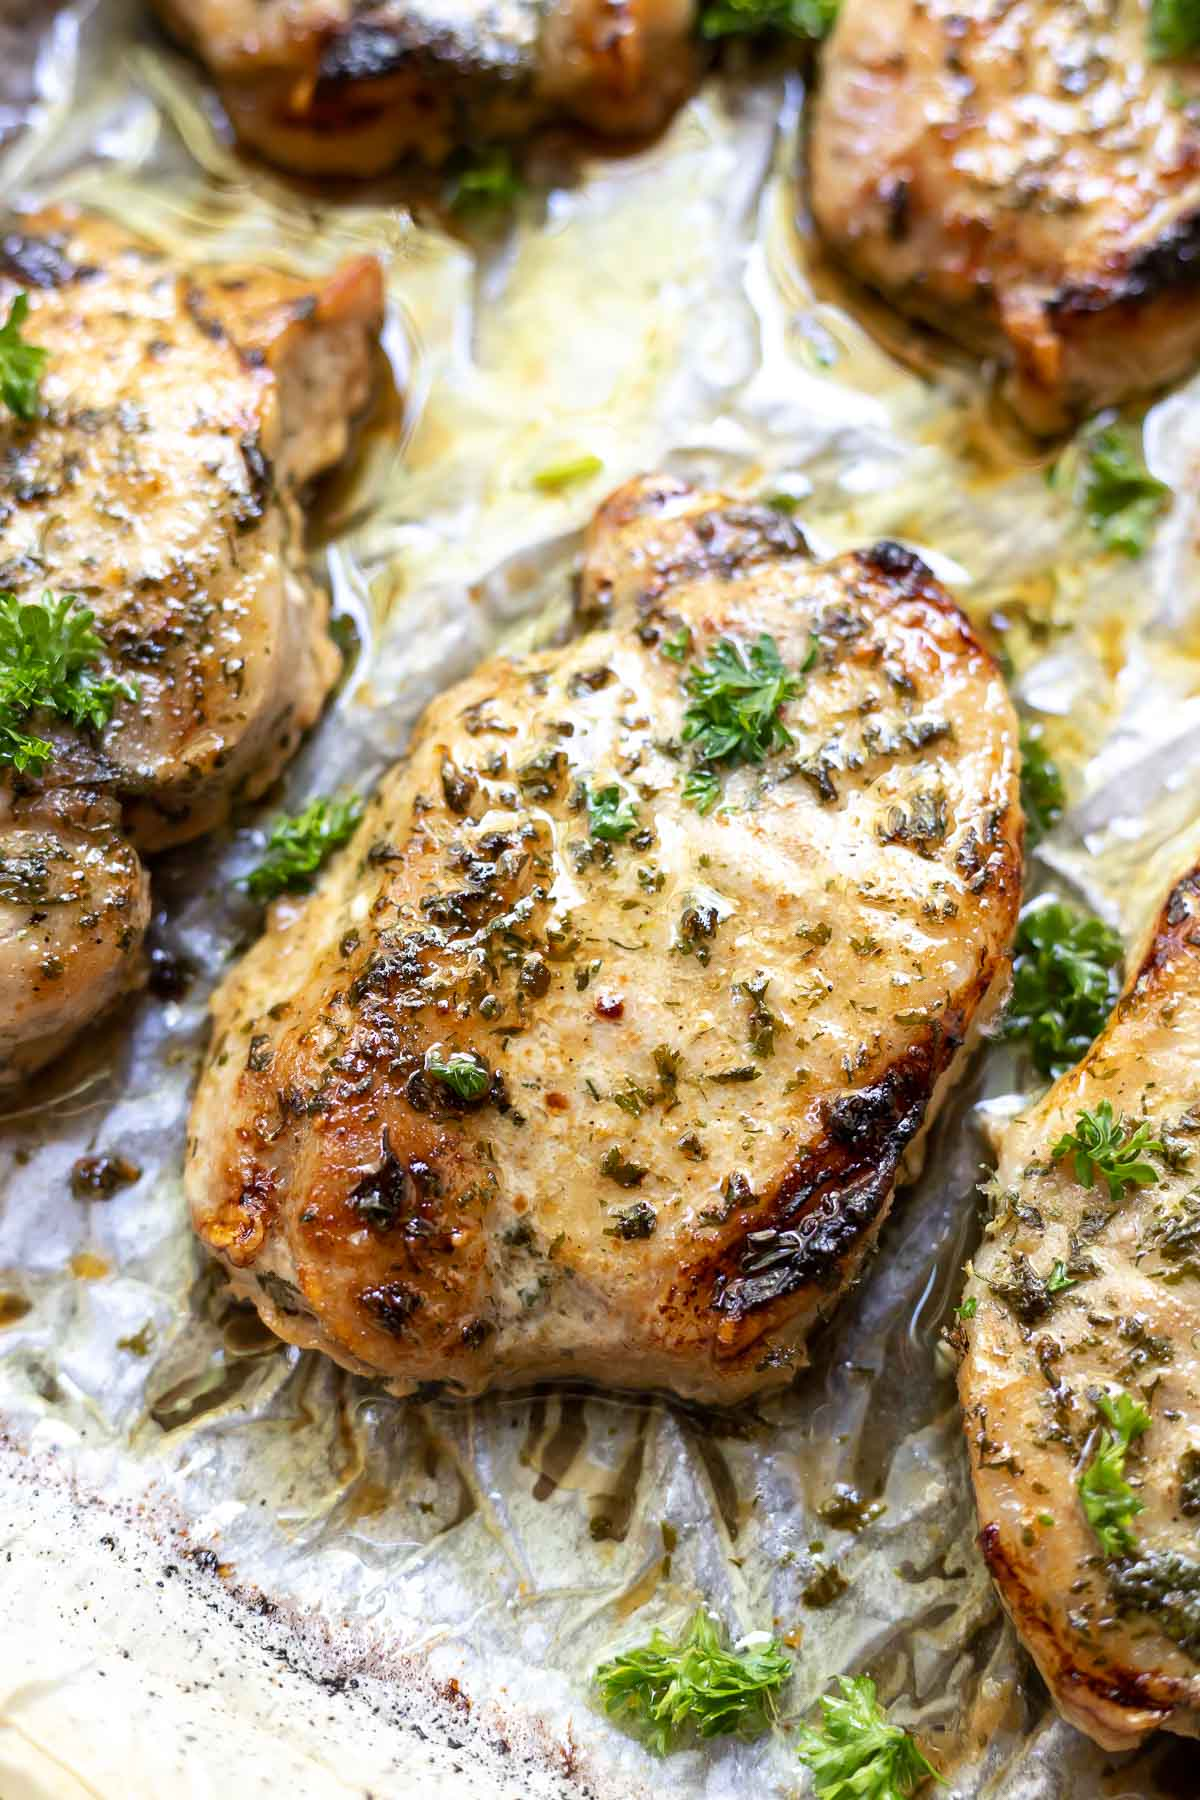 pork chops baked recipes ranch chop oven recipe wonkywonderful easy dinner quick healthy inexpensive stuffed weeknight grilled meals disclosure affiliate